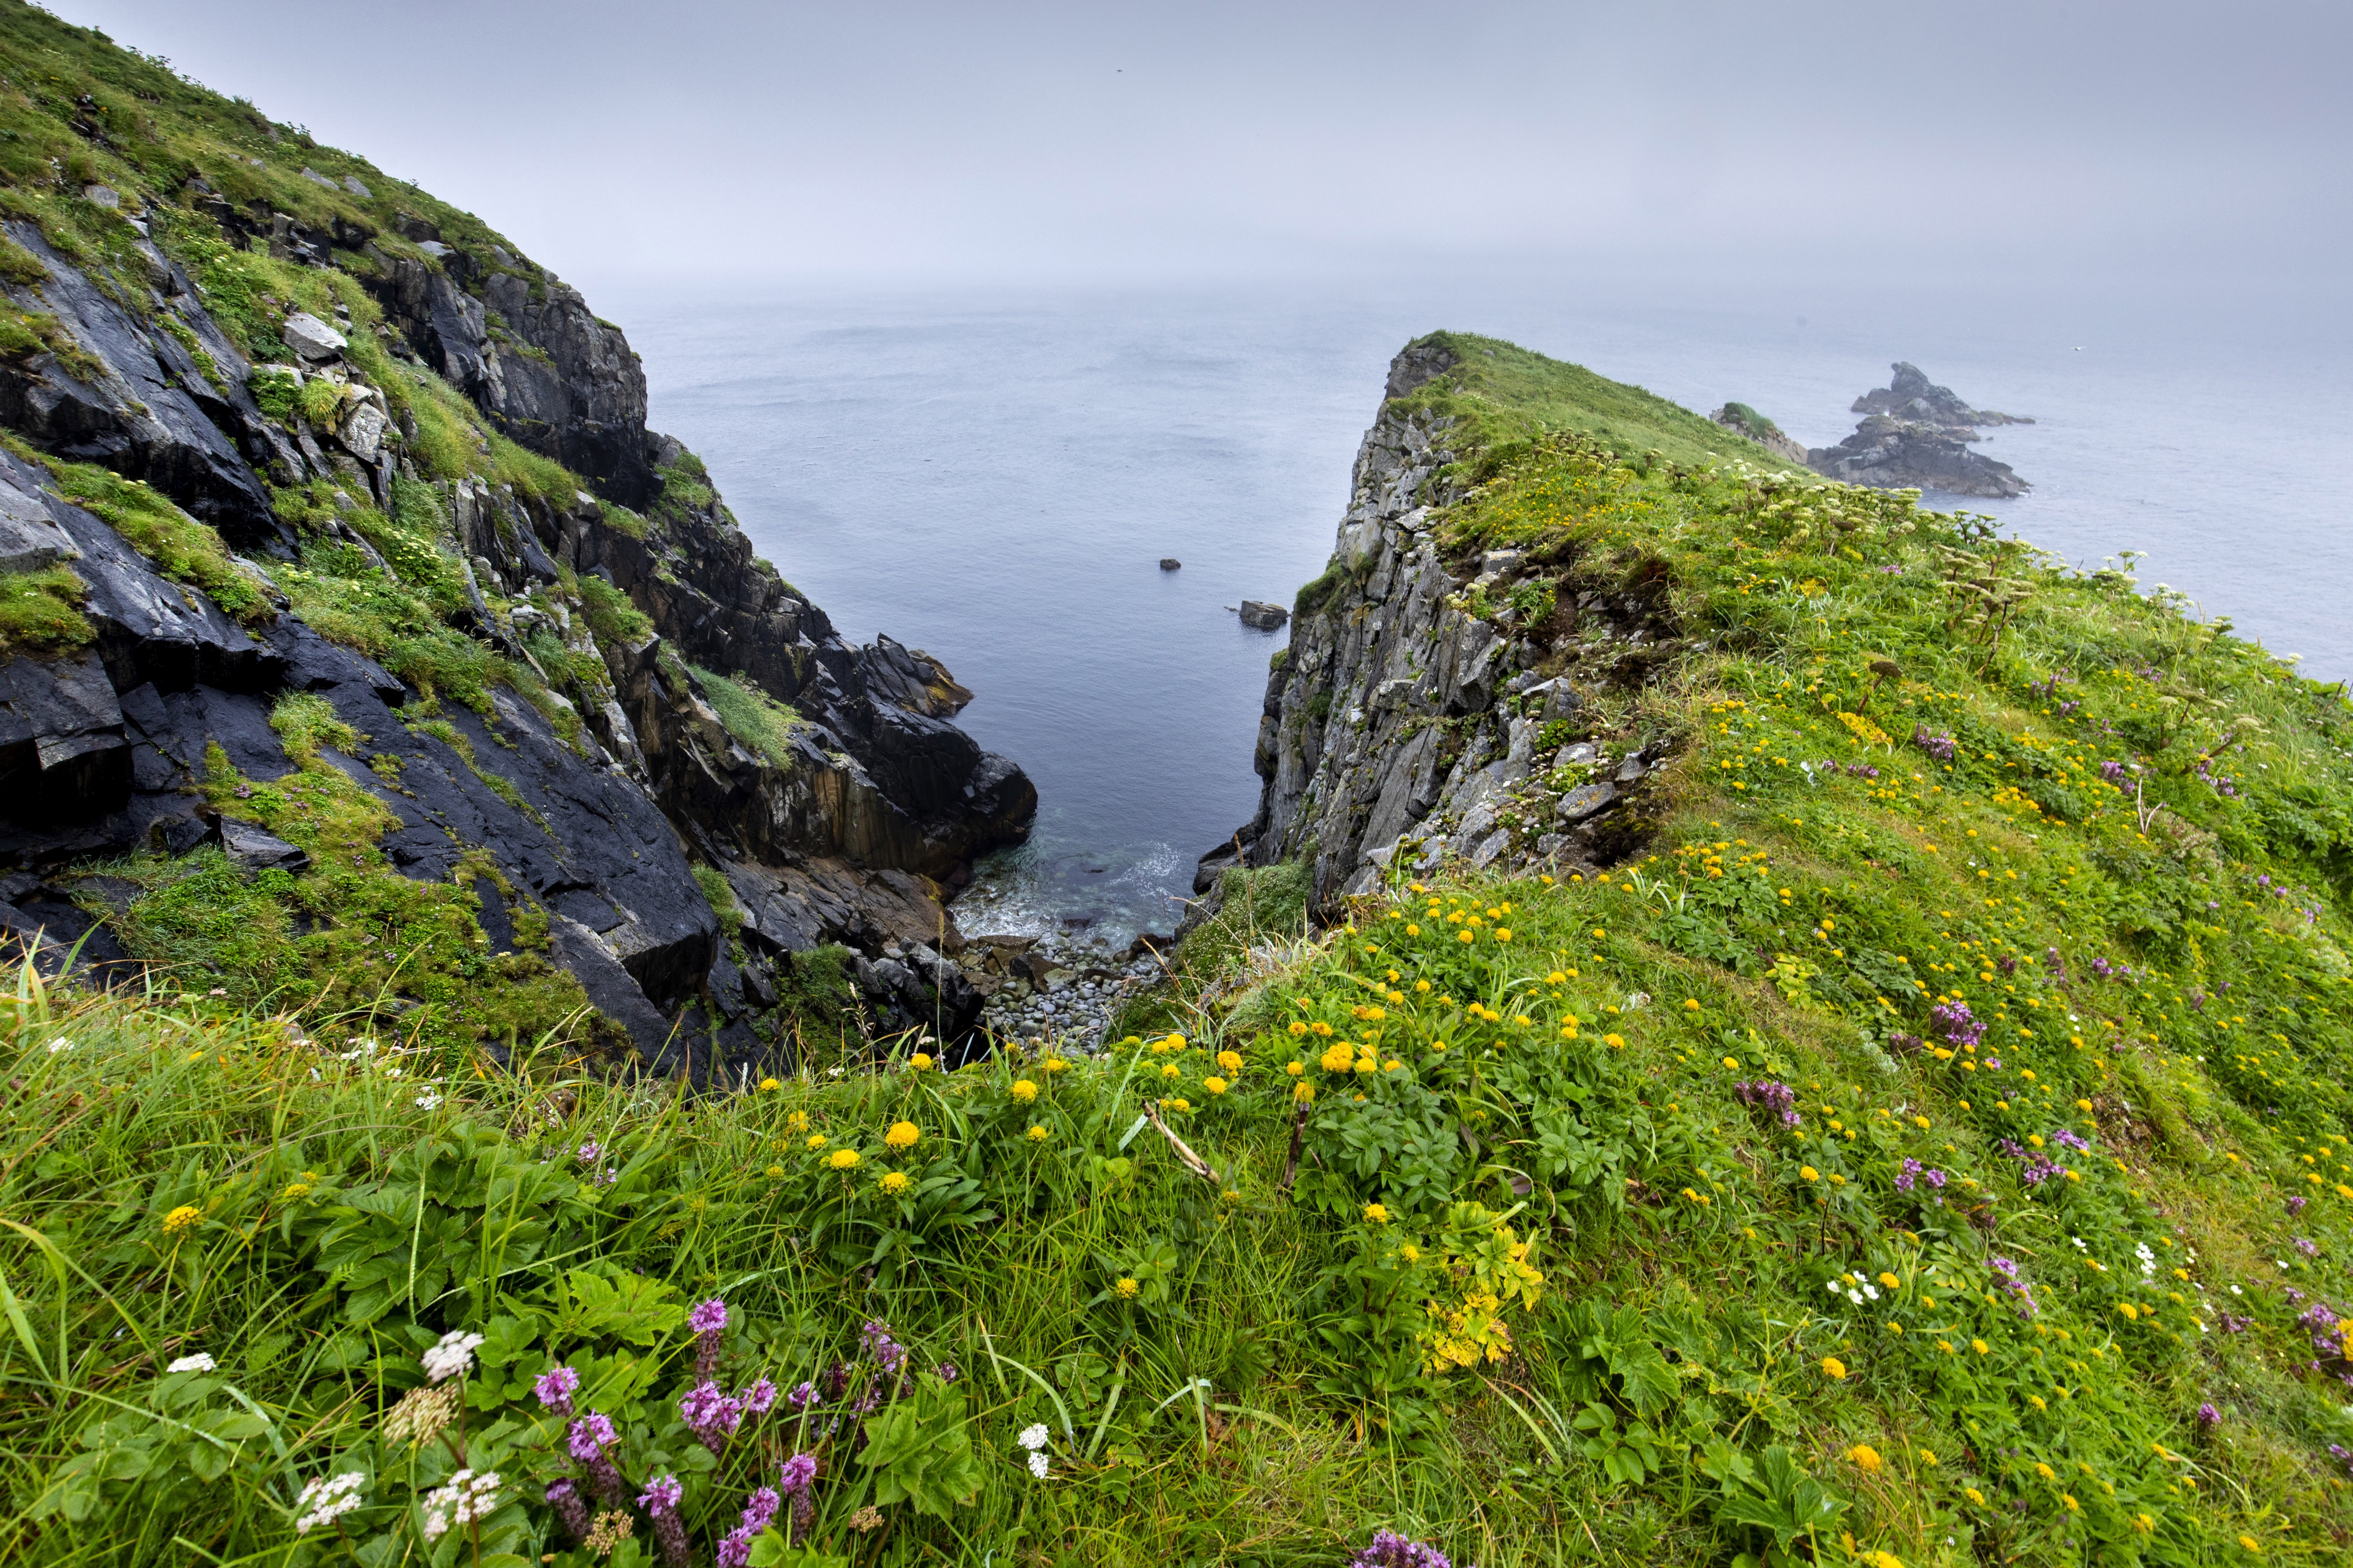 Purple and yellow wildflowers among short green vegetation grow on the edge of a rocky cliff that drops into the ocean in the background.